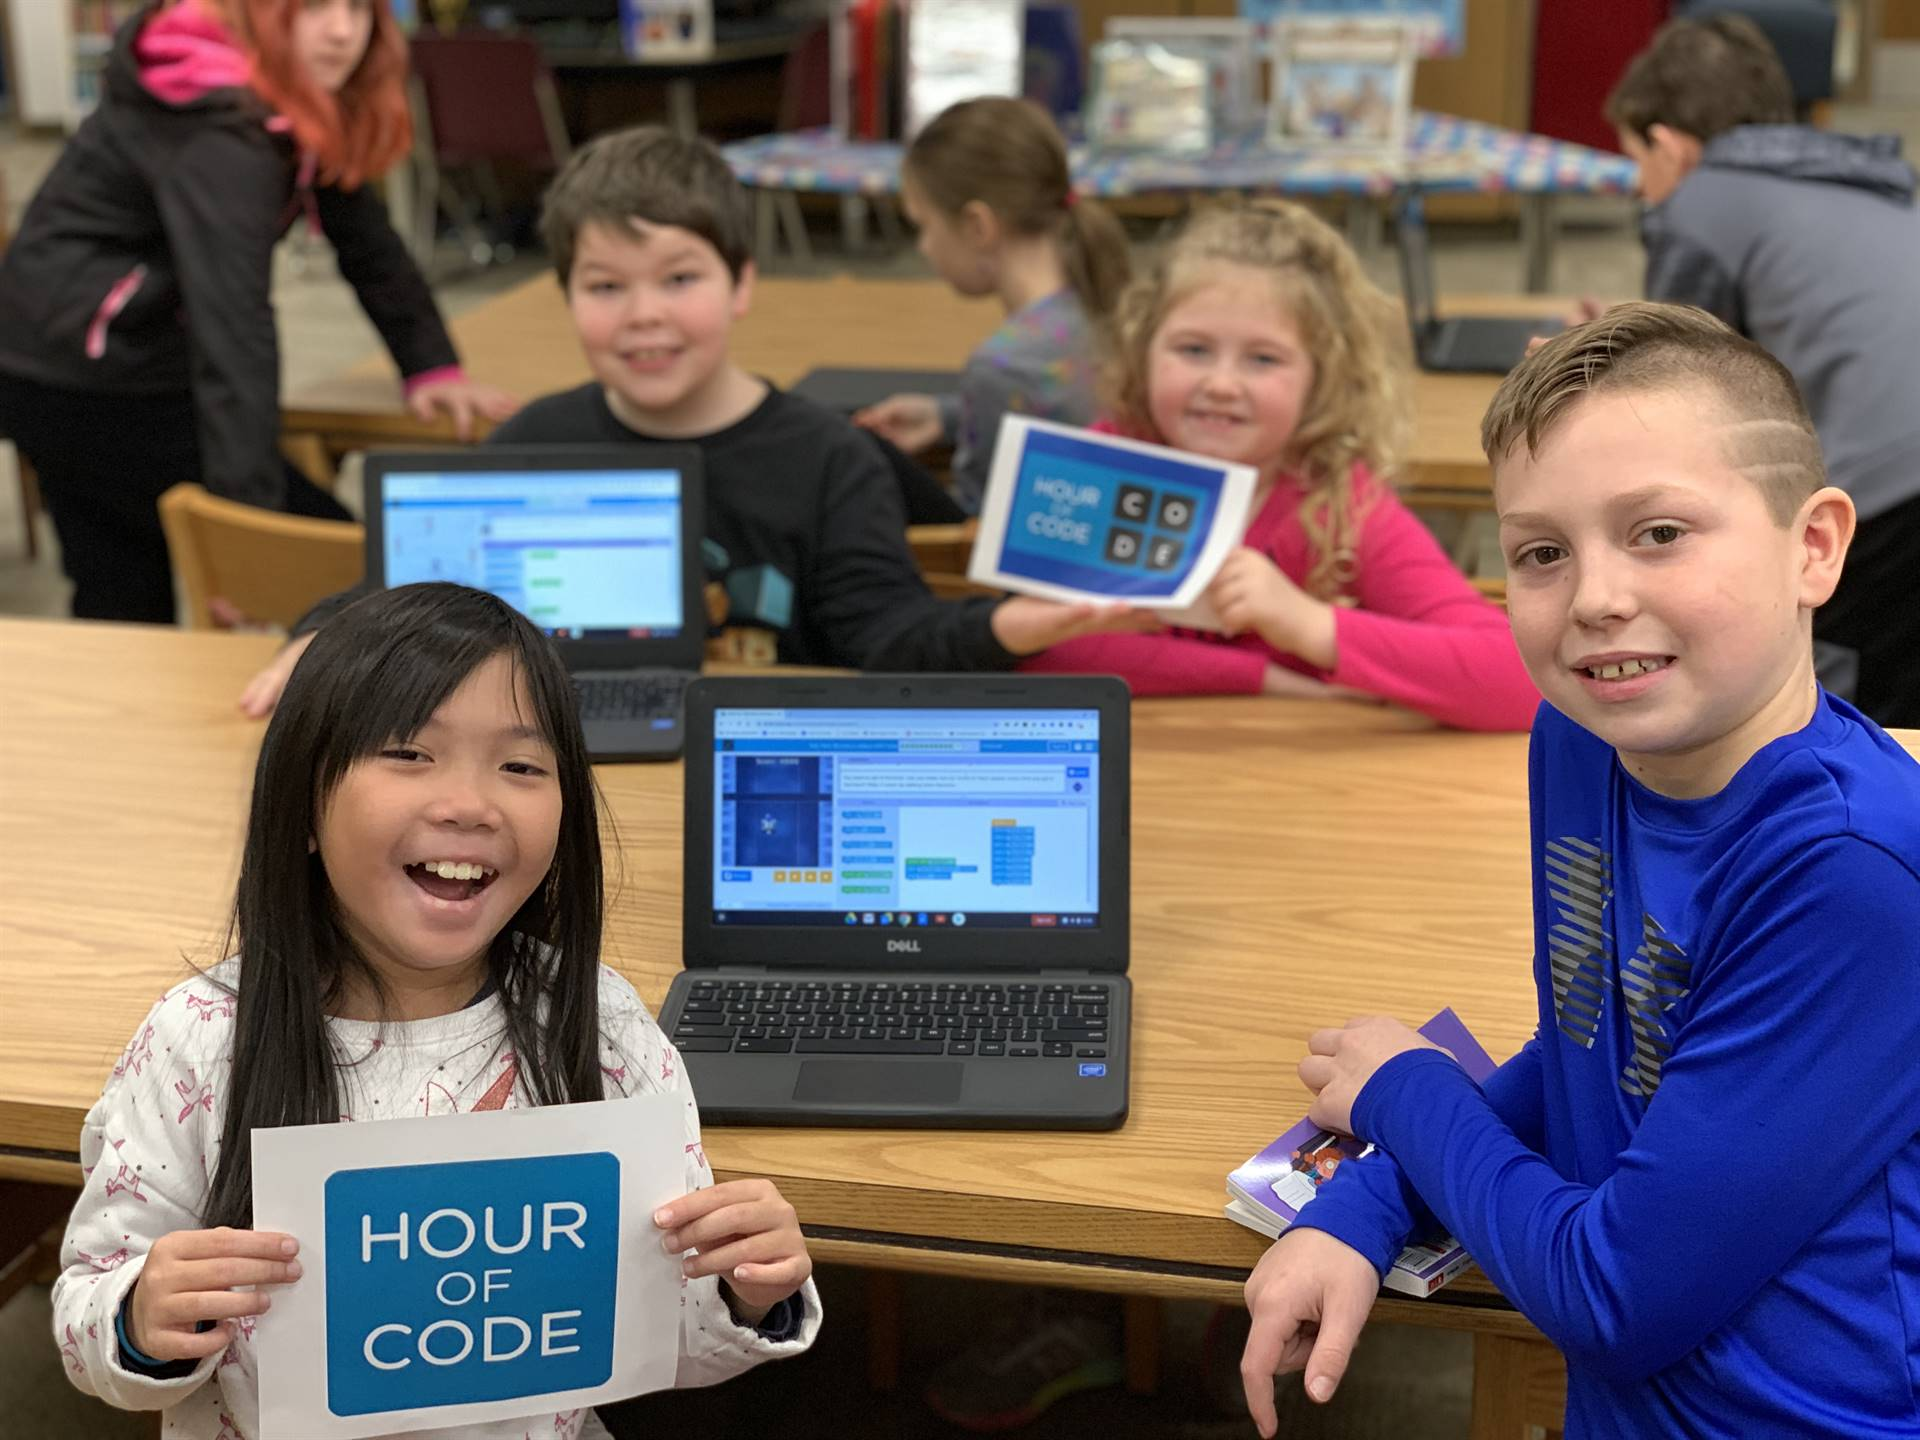 Four students with Hour of Code signs and computers